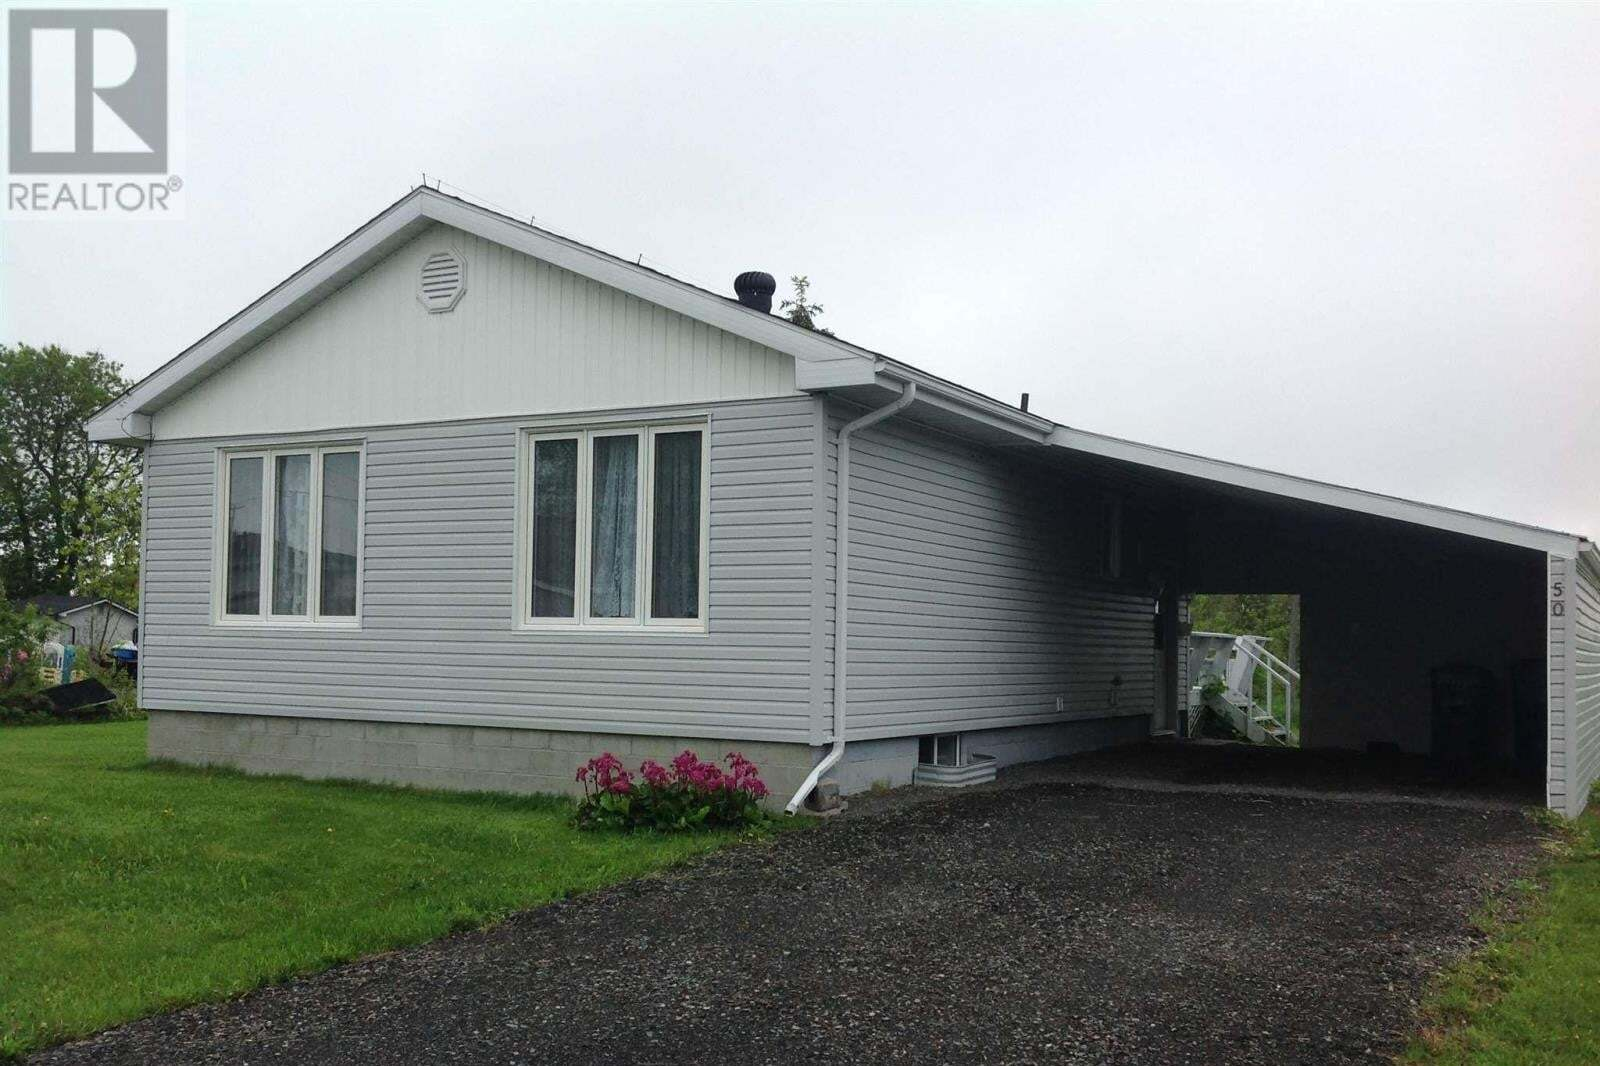 House for sale at 50 Maple St Temiskaming Shores Ontario - MLS: TM200569